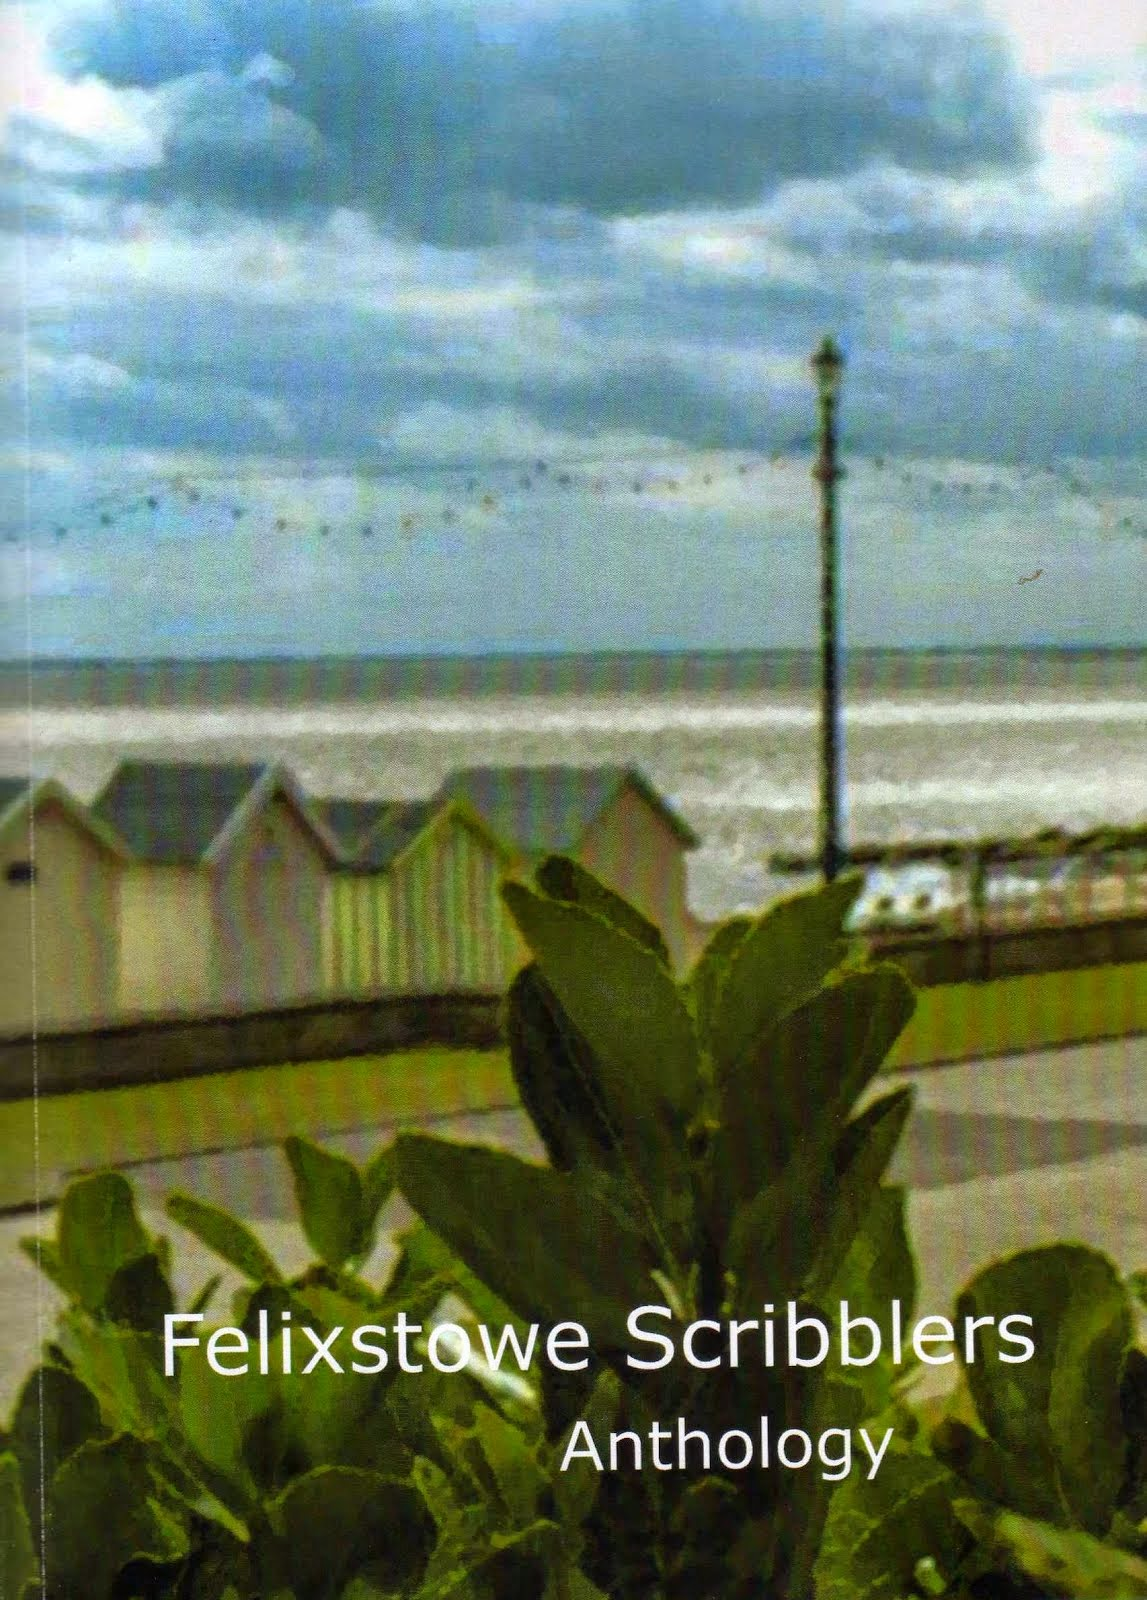 Felixstowe Scribblers Anthology